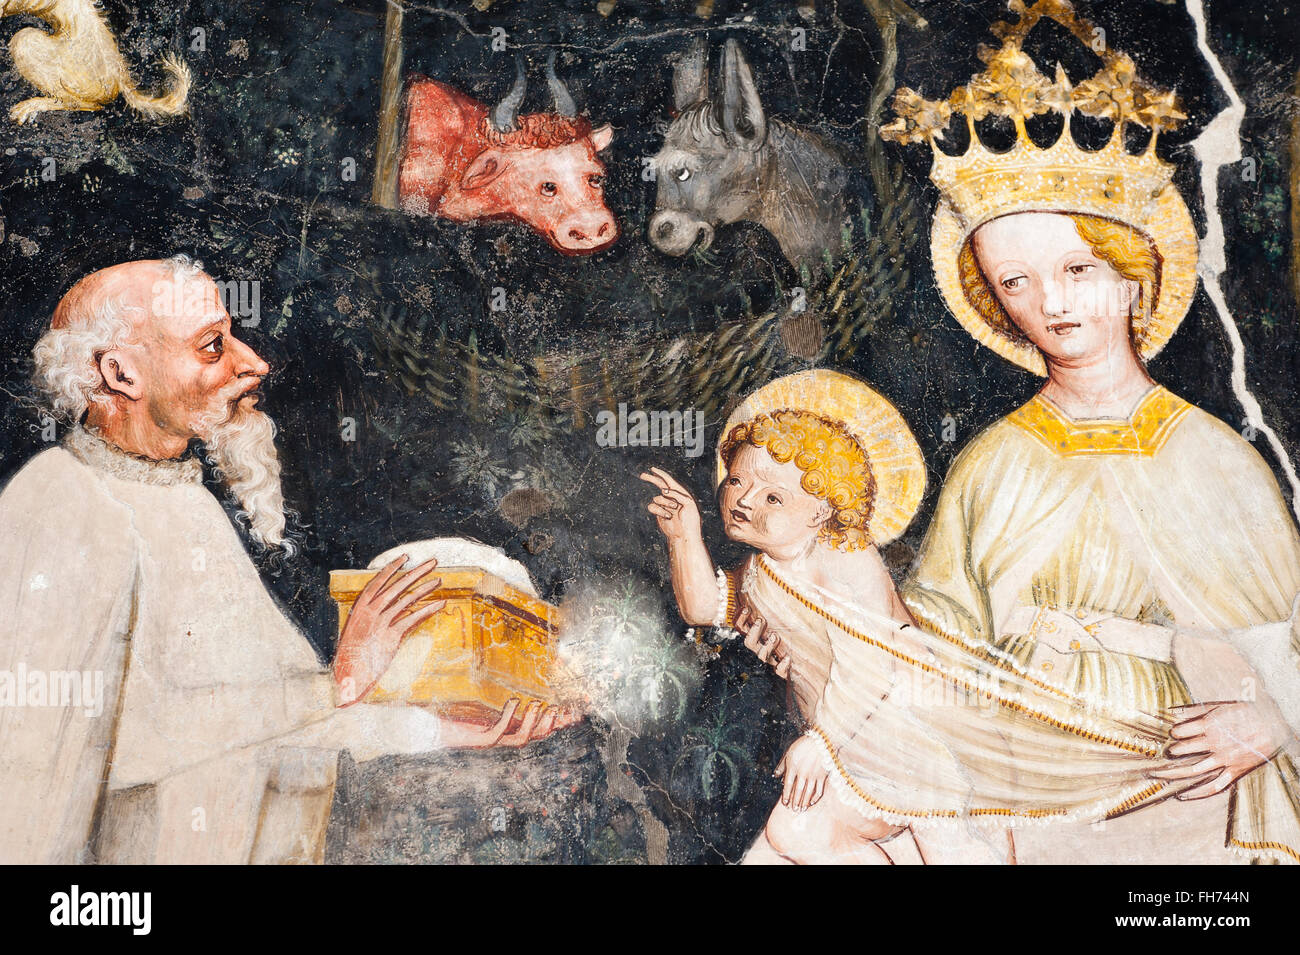 Gothic fresco, Adoration of the Magi, 13. Cloister, Cathedral, Brixen, South Tyrol, Italy - Stock Image